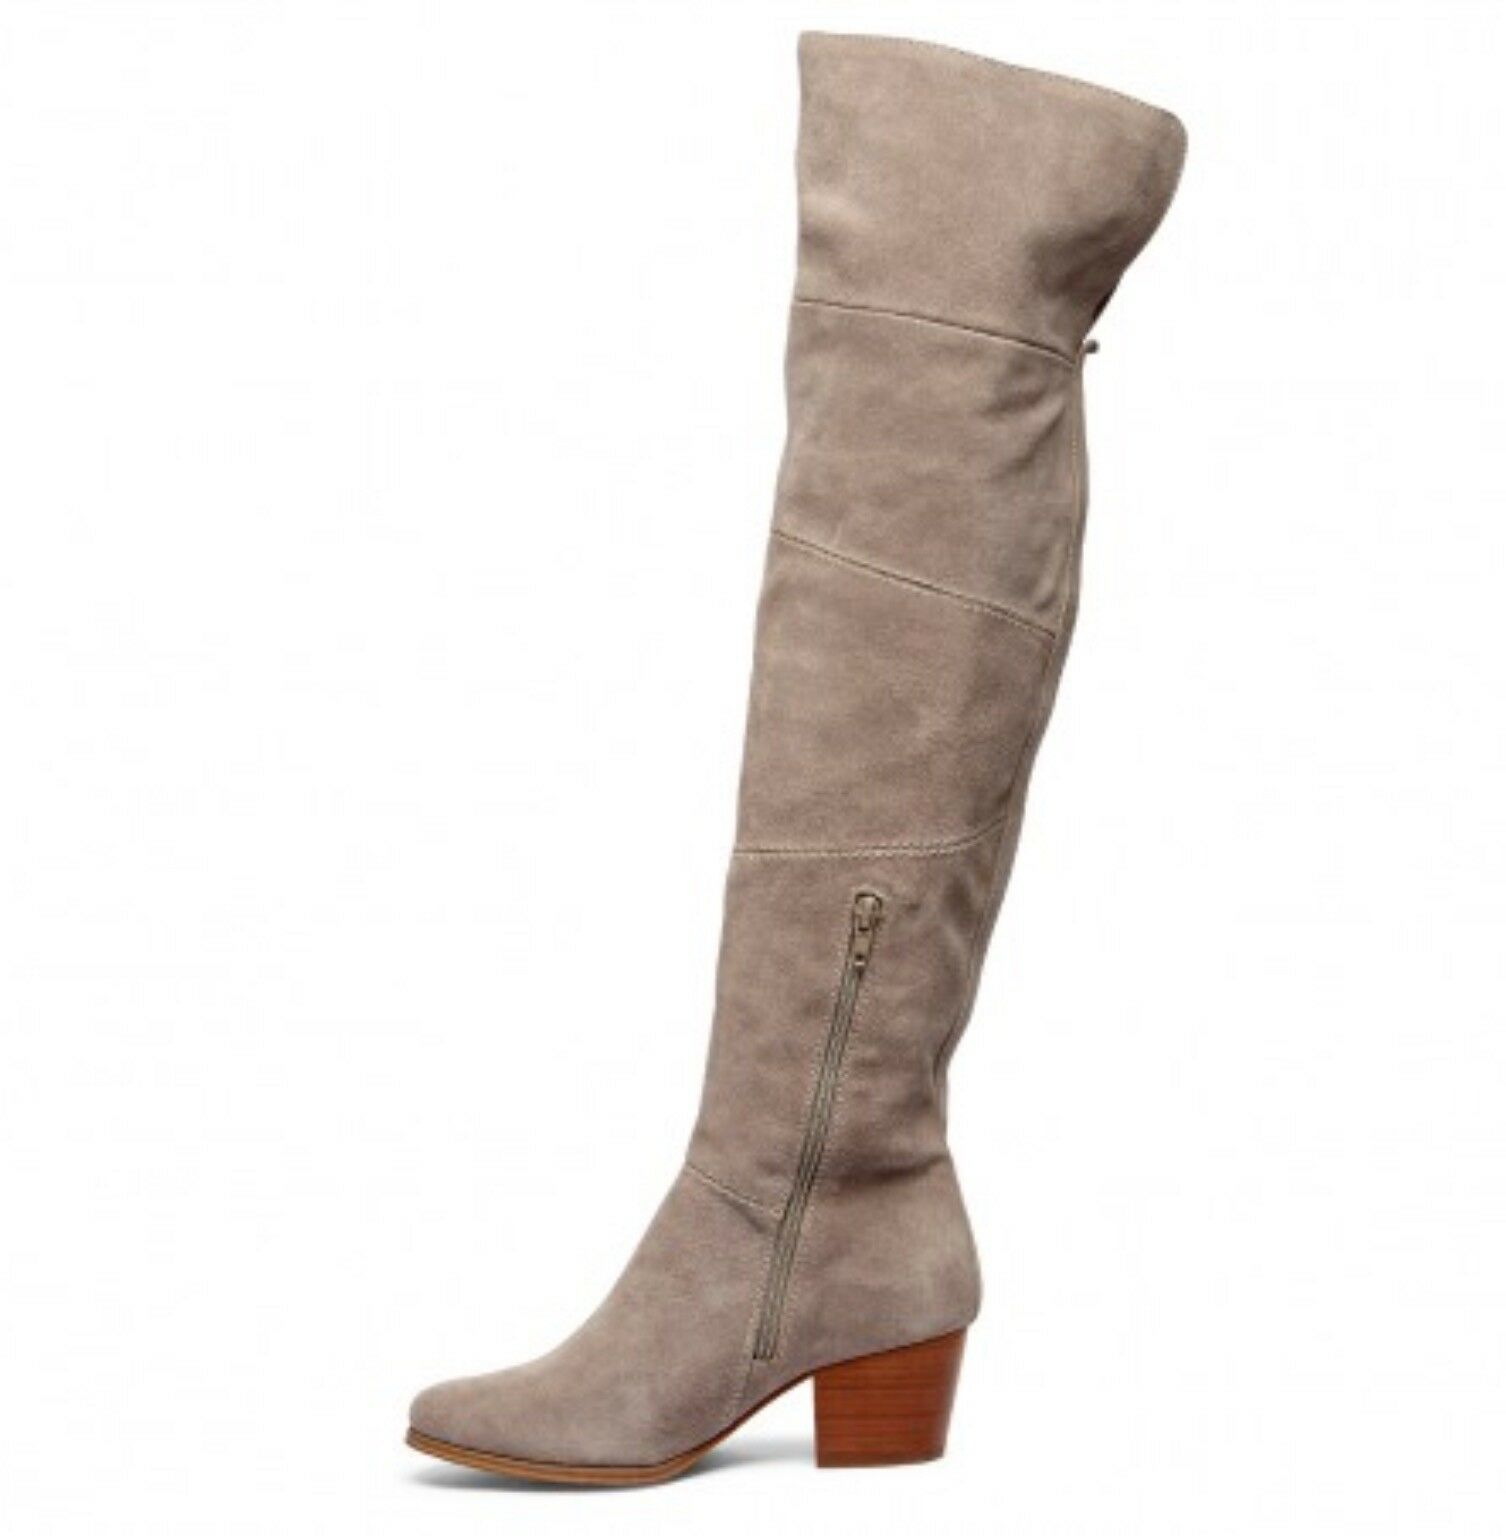 SOLE Size SOCIETY MELBOURNE Patchwork OTK Boot, Size SOLE 7.5, Mushroom Color 153900